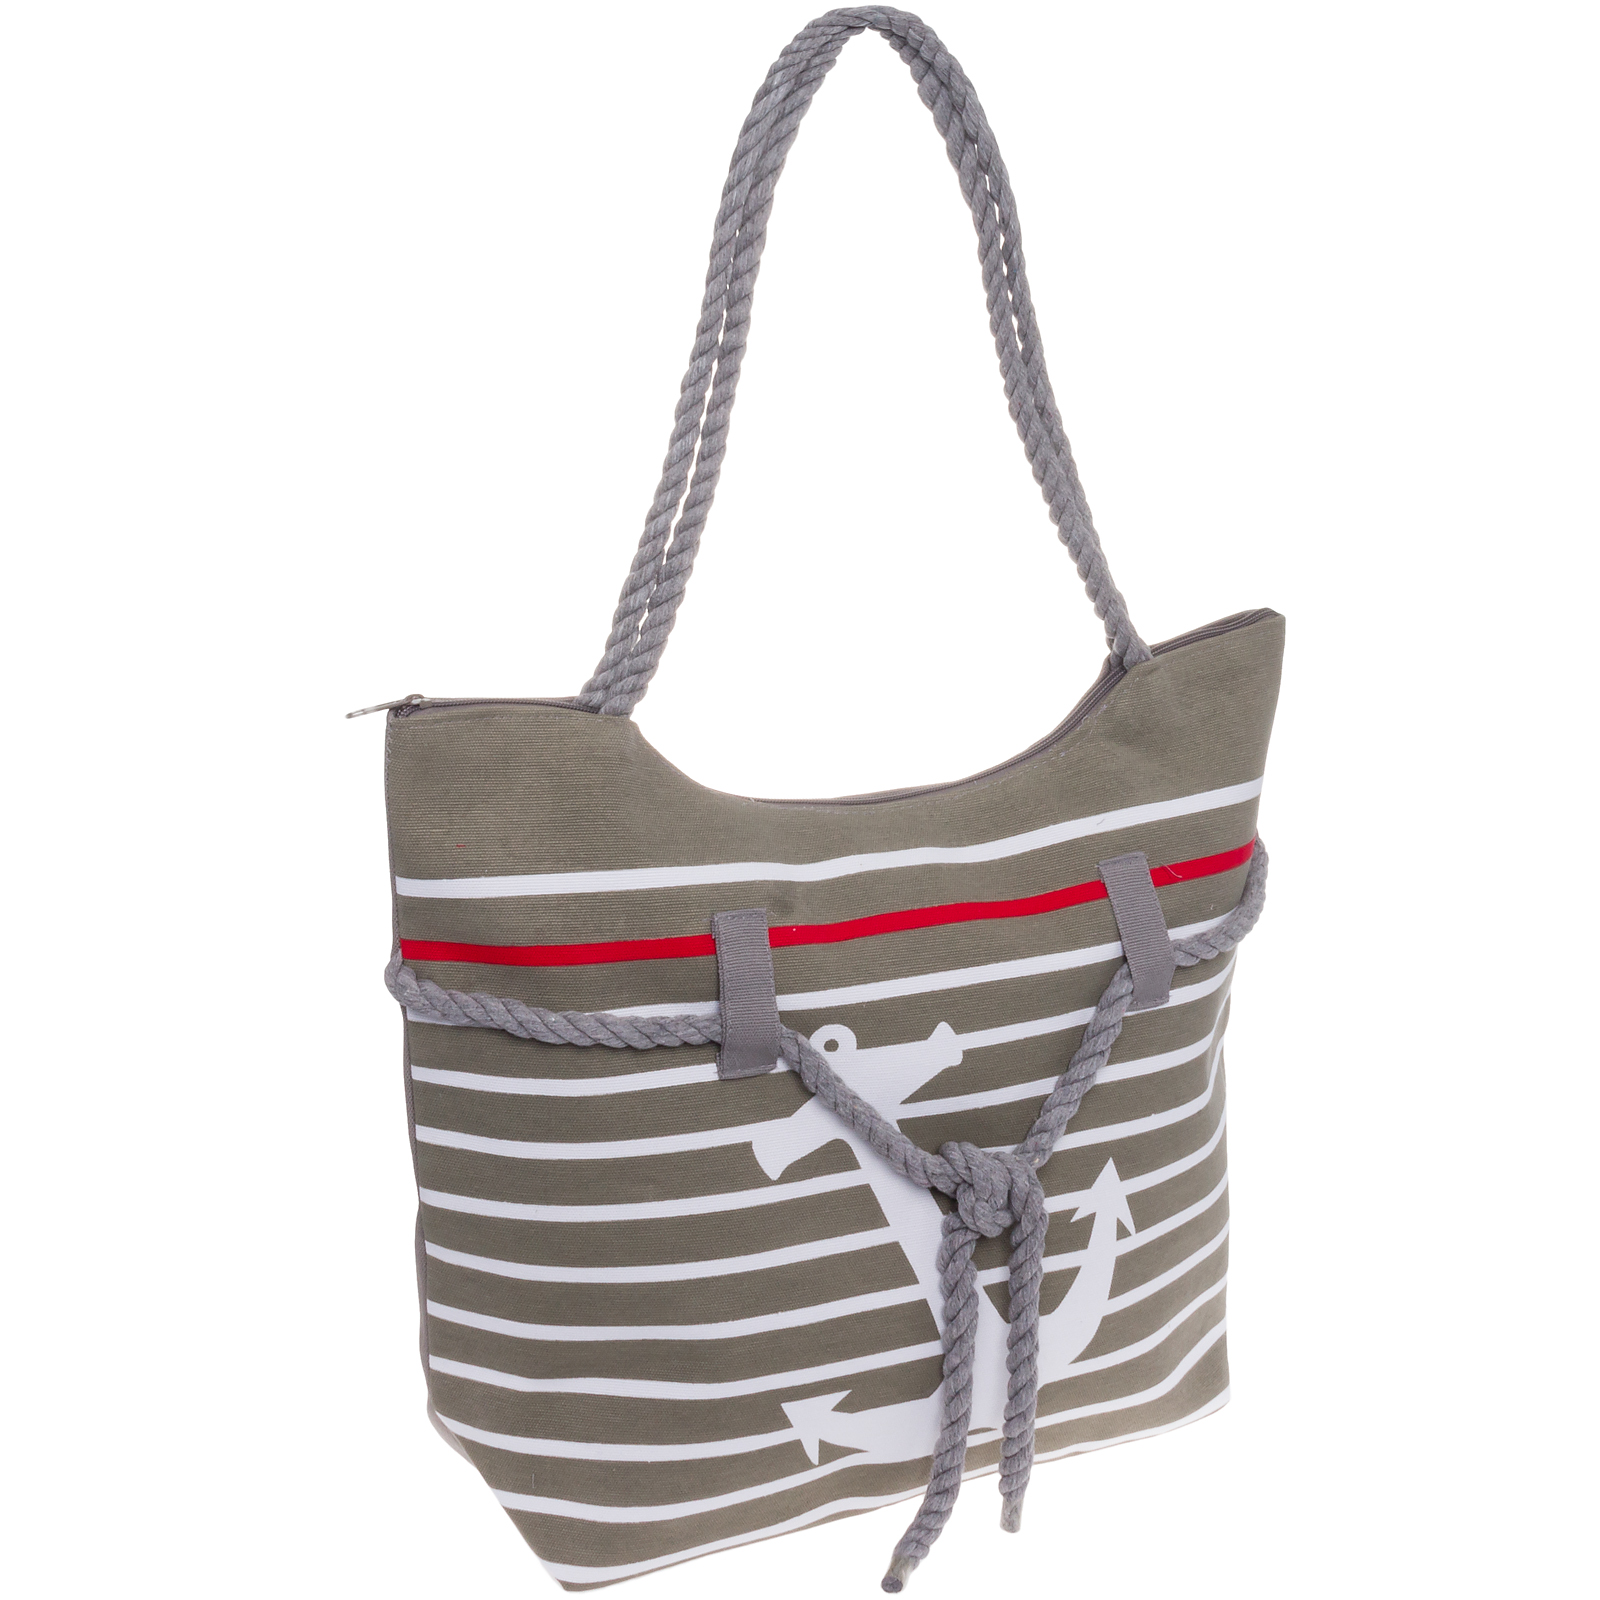 SILVERHOOKS NEW Women's Striped Nautical Anchor Beach Tote Bag ...